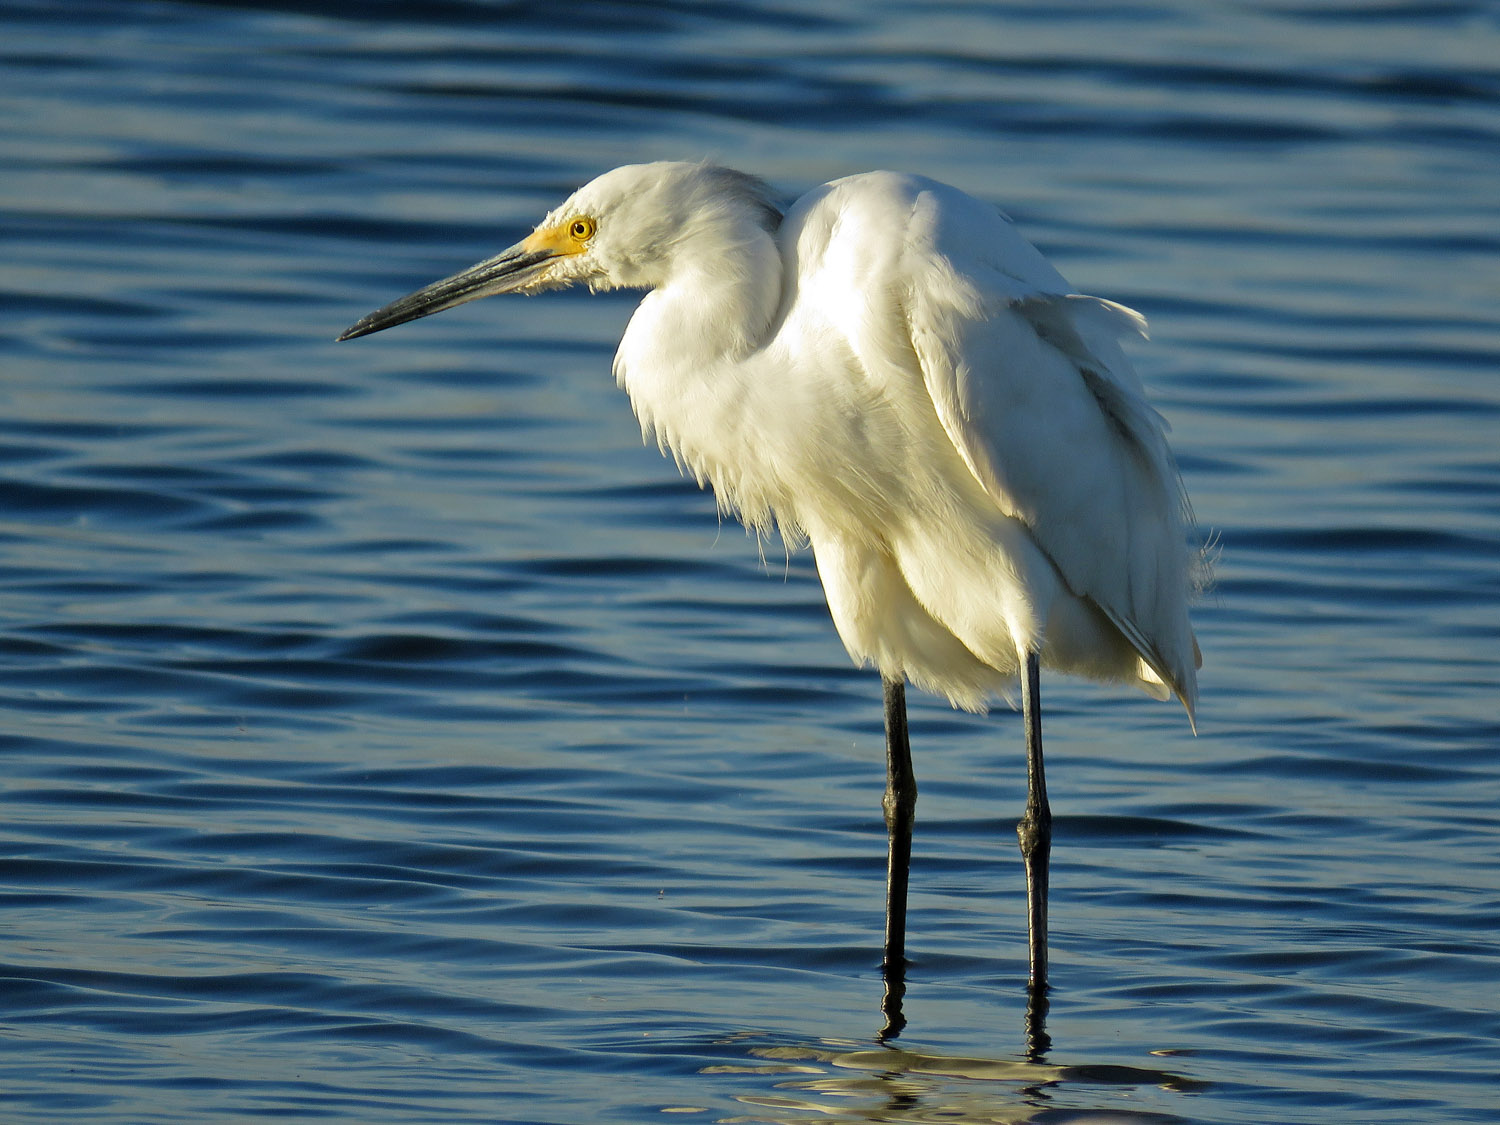 Snowy egret, October 19, 2017, Jamaica Bay Wildlife Refuge